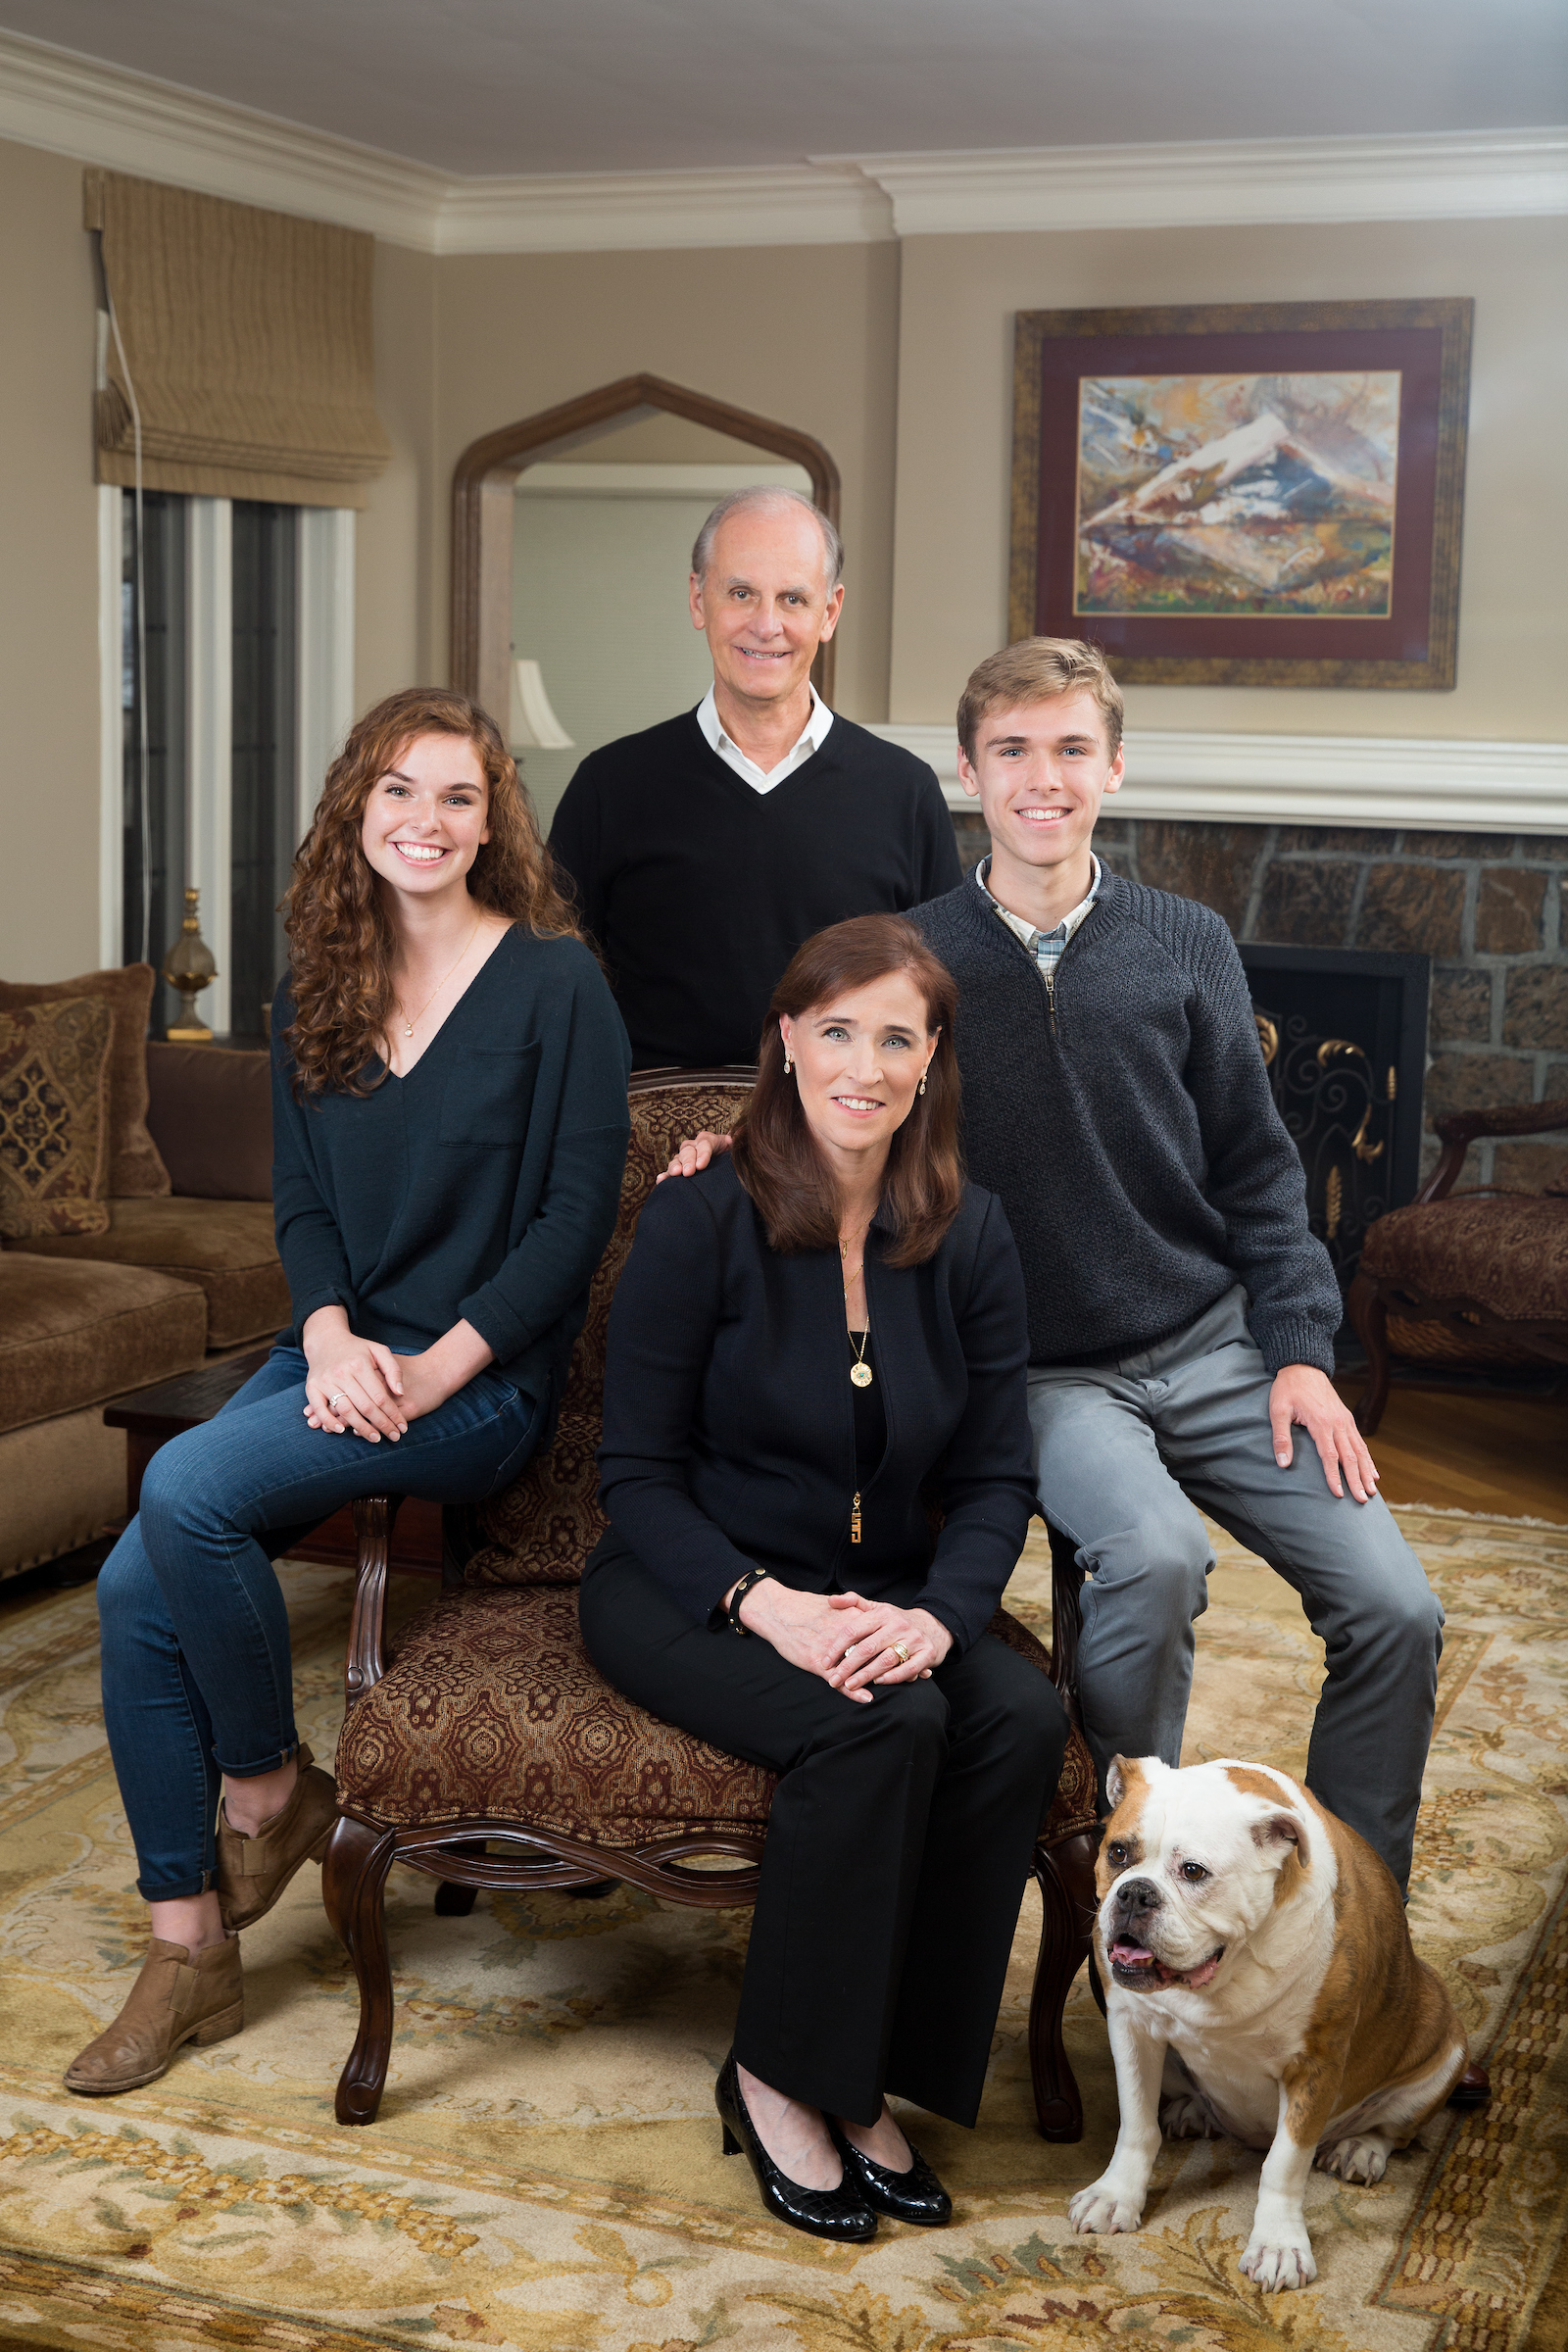 Riordan-Gatewood family, September 2018